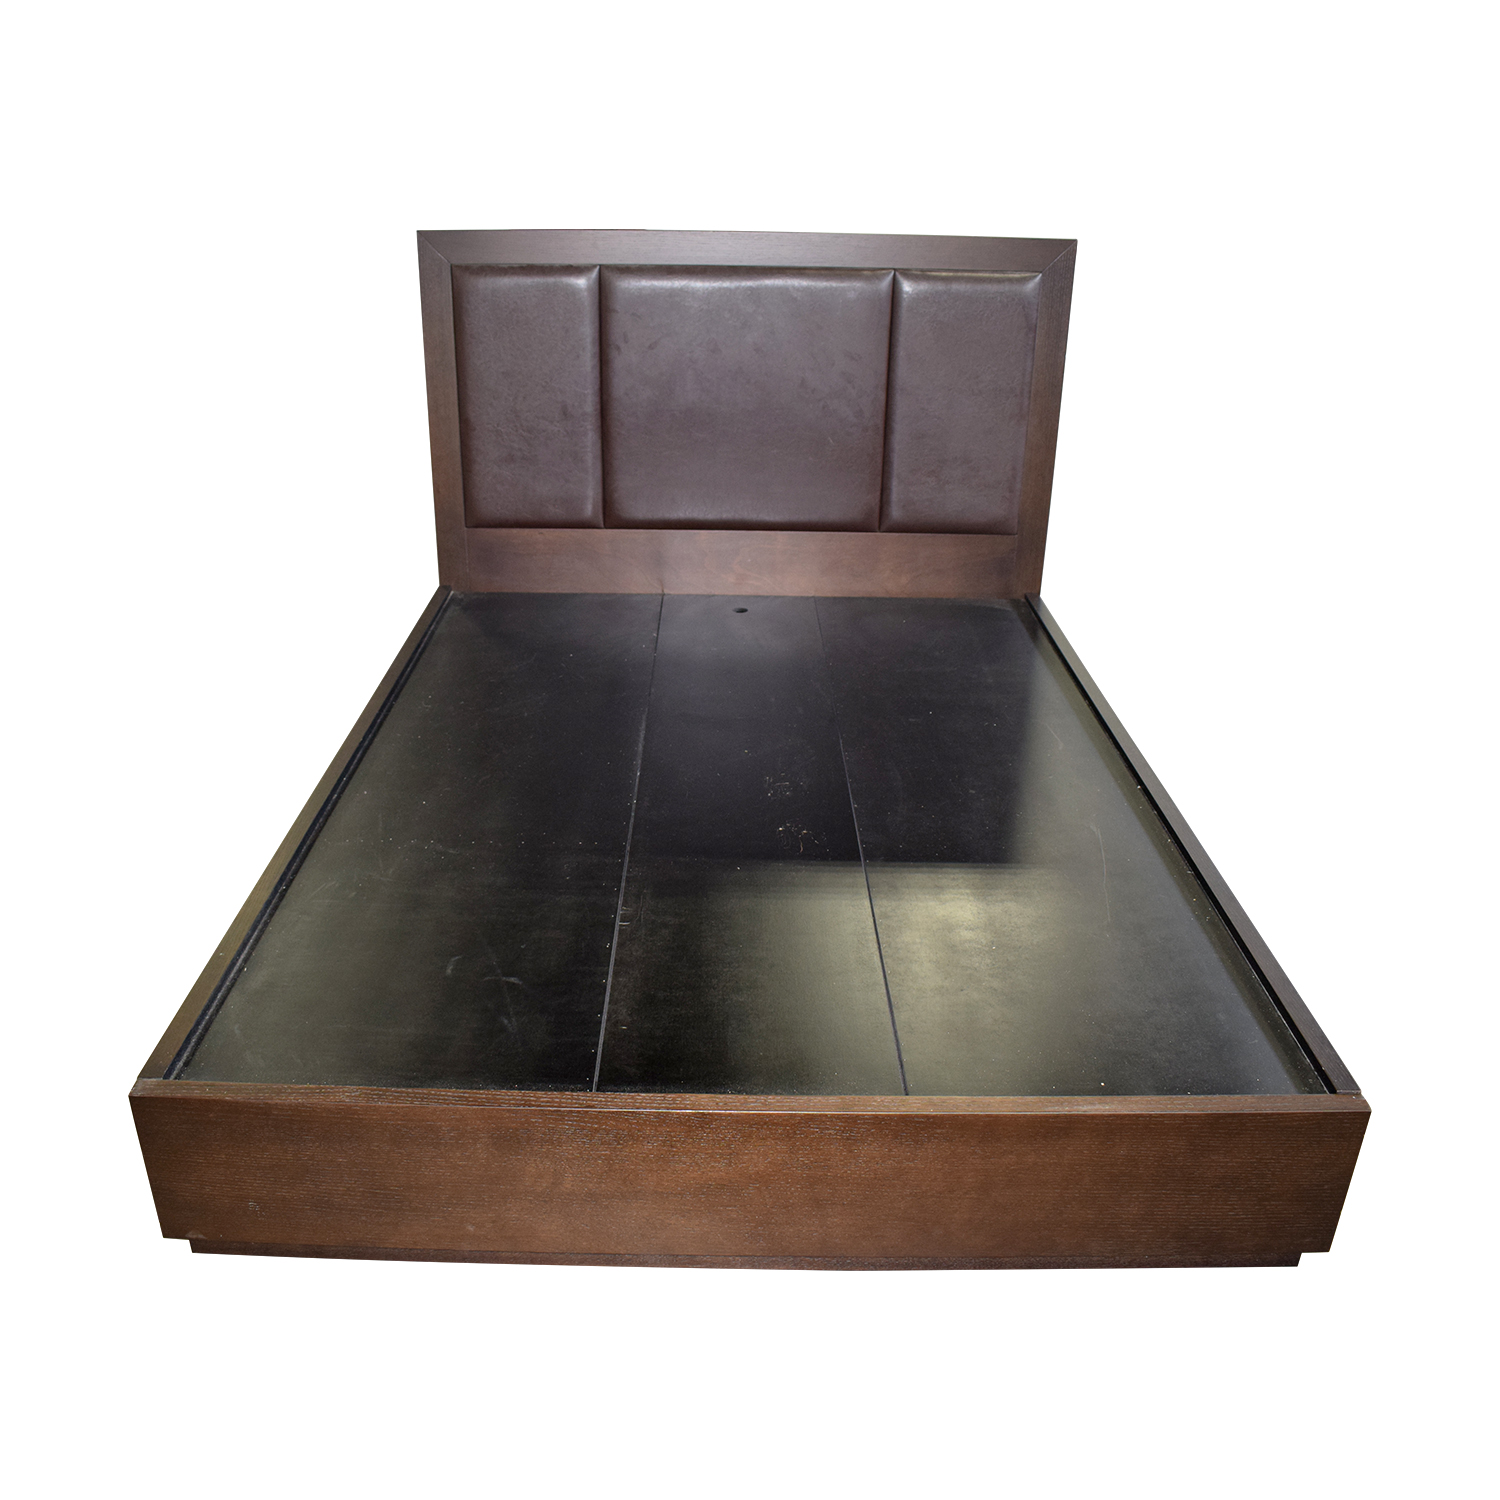 Wood Platform Queen  Bed Frame with Storage dimensions